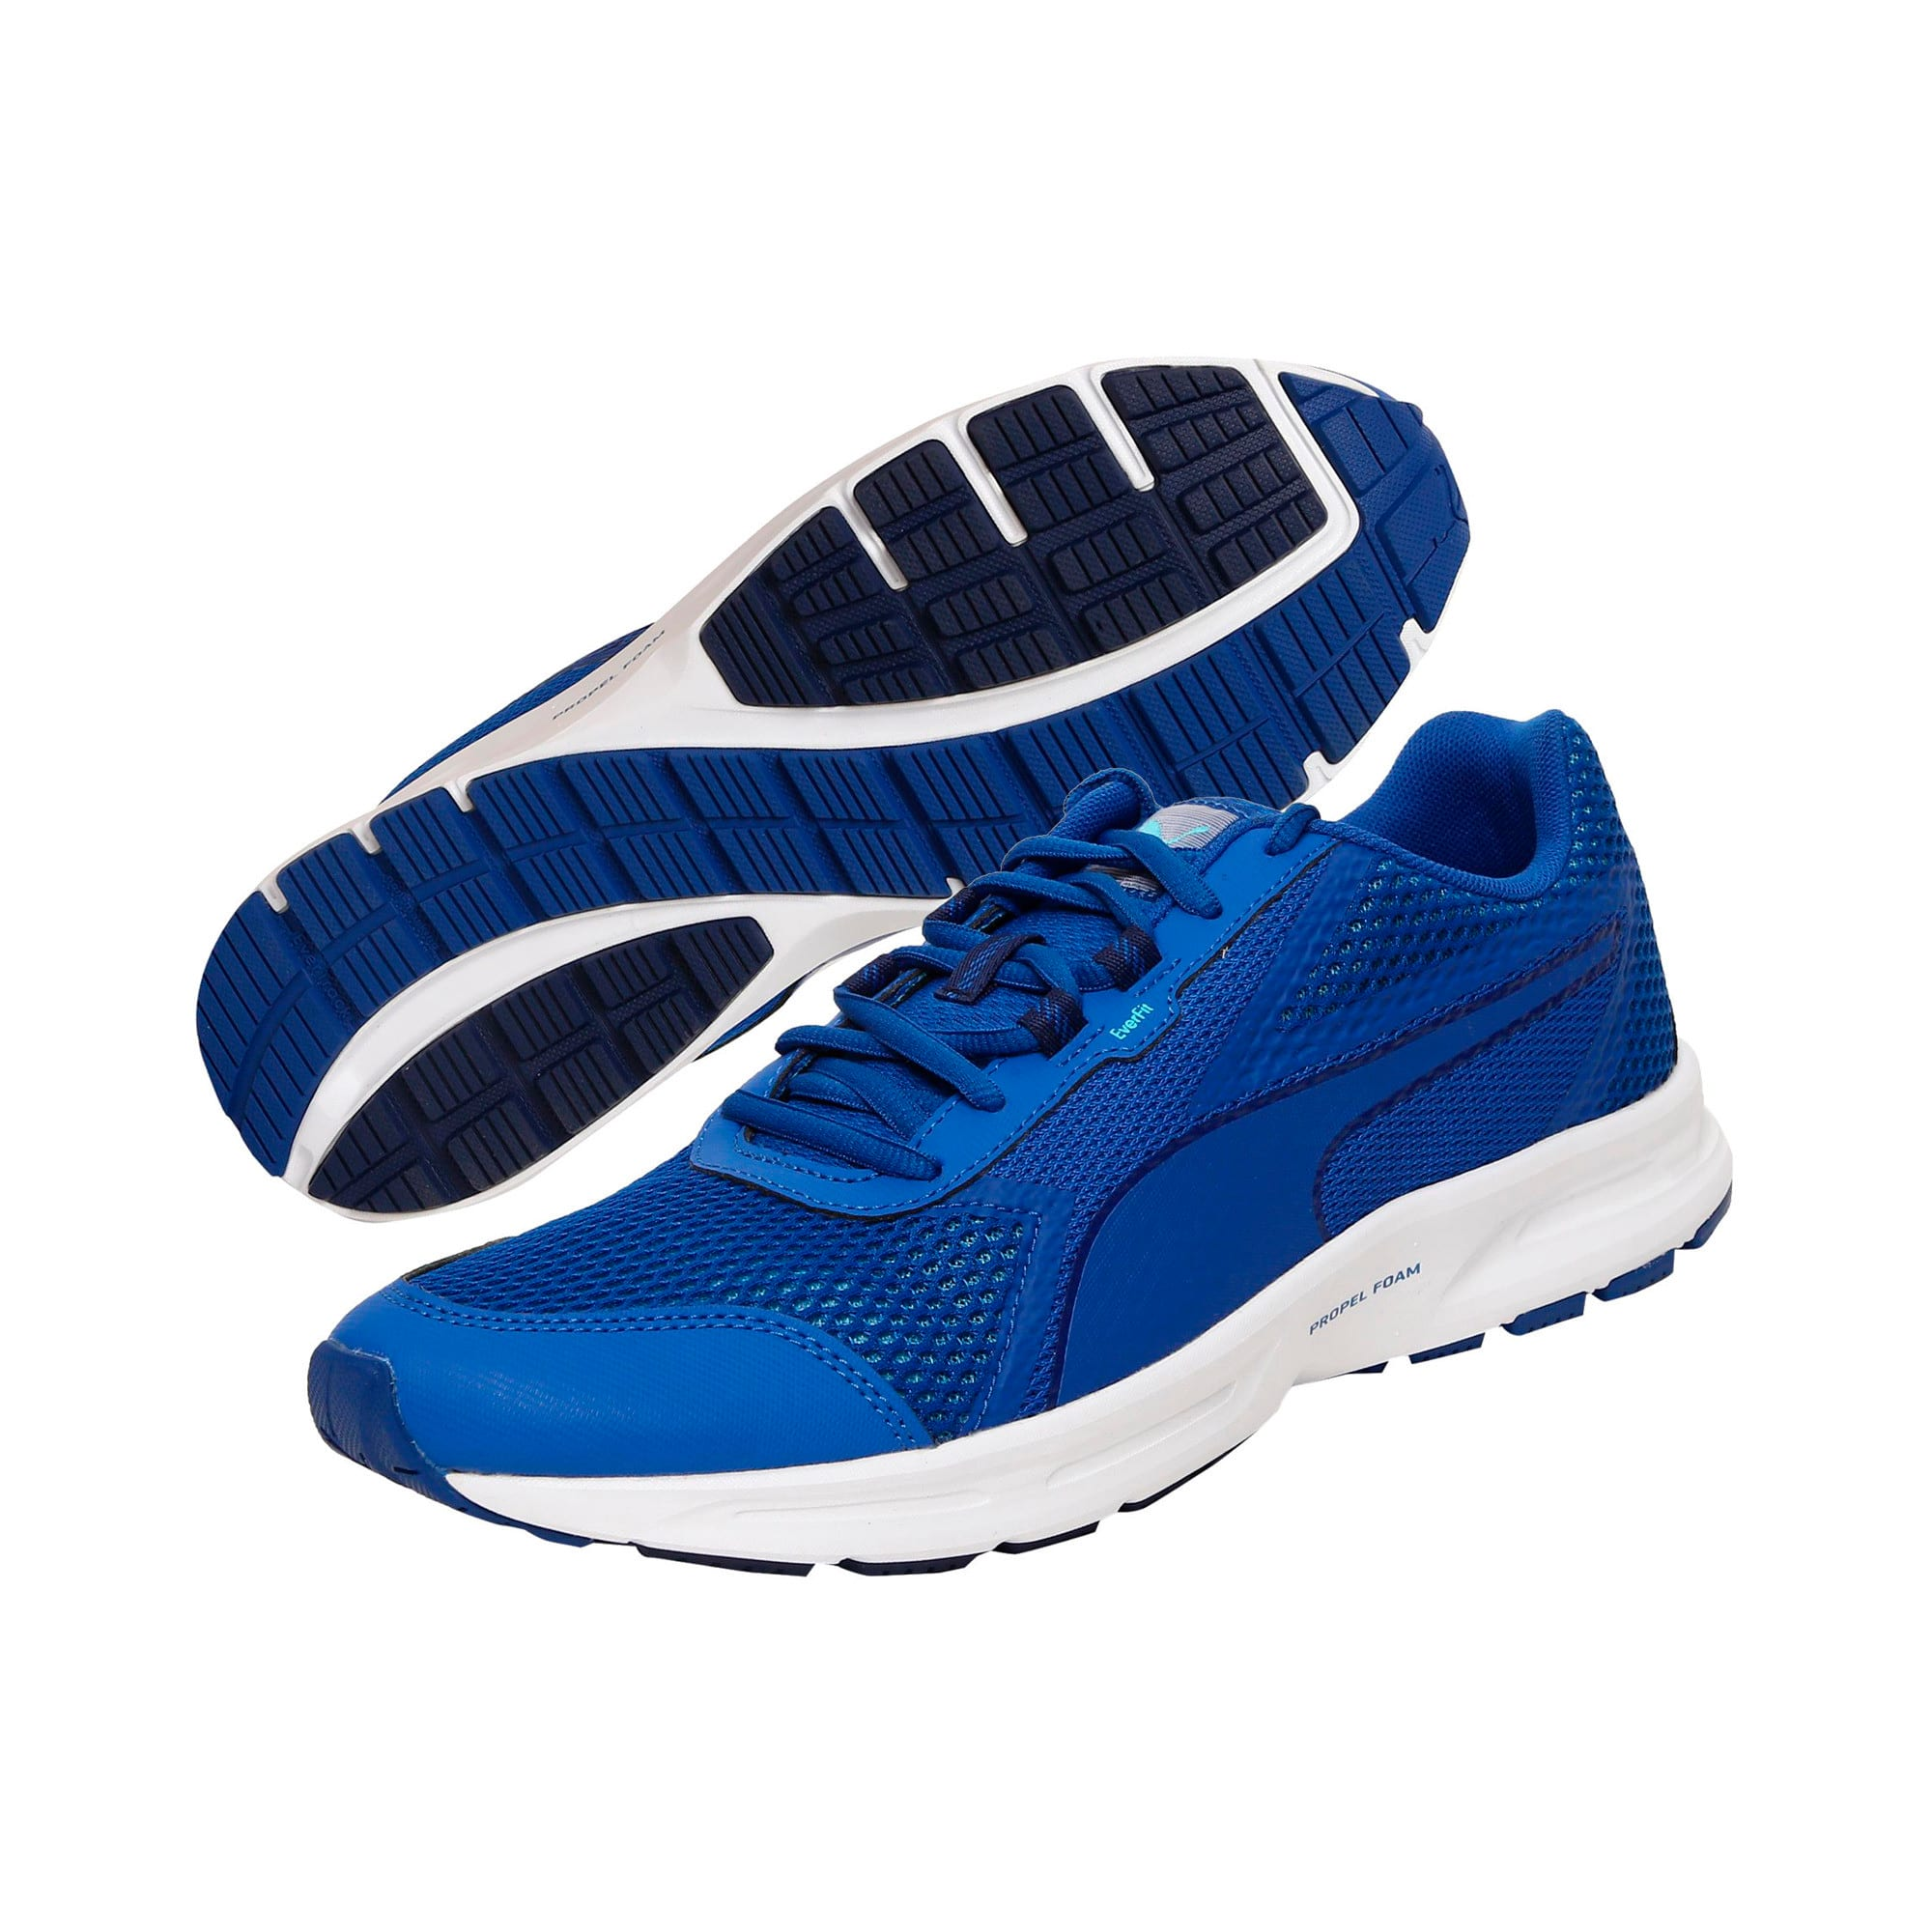 Thumbnail 2 of Essential Runner Men's Running Shoes, Lapis Blue-Blue Depths-Turq, medium-IND